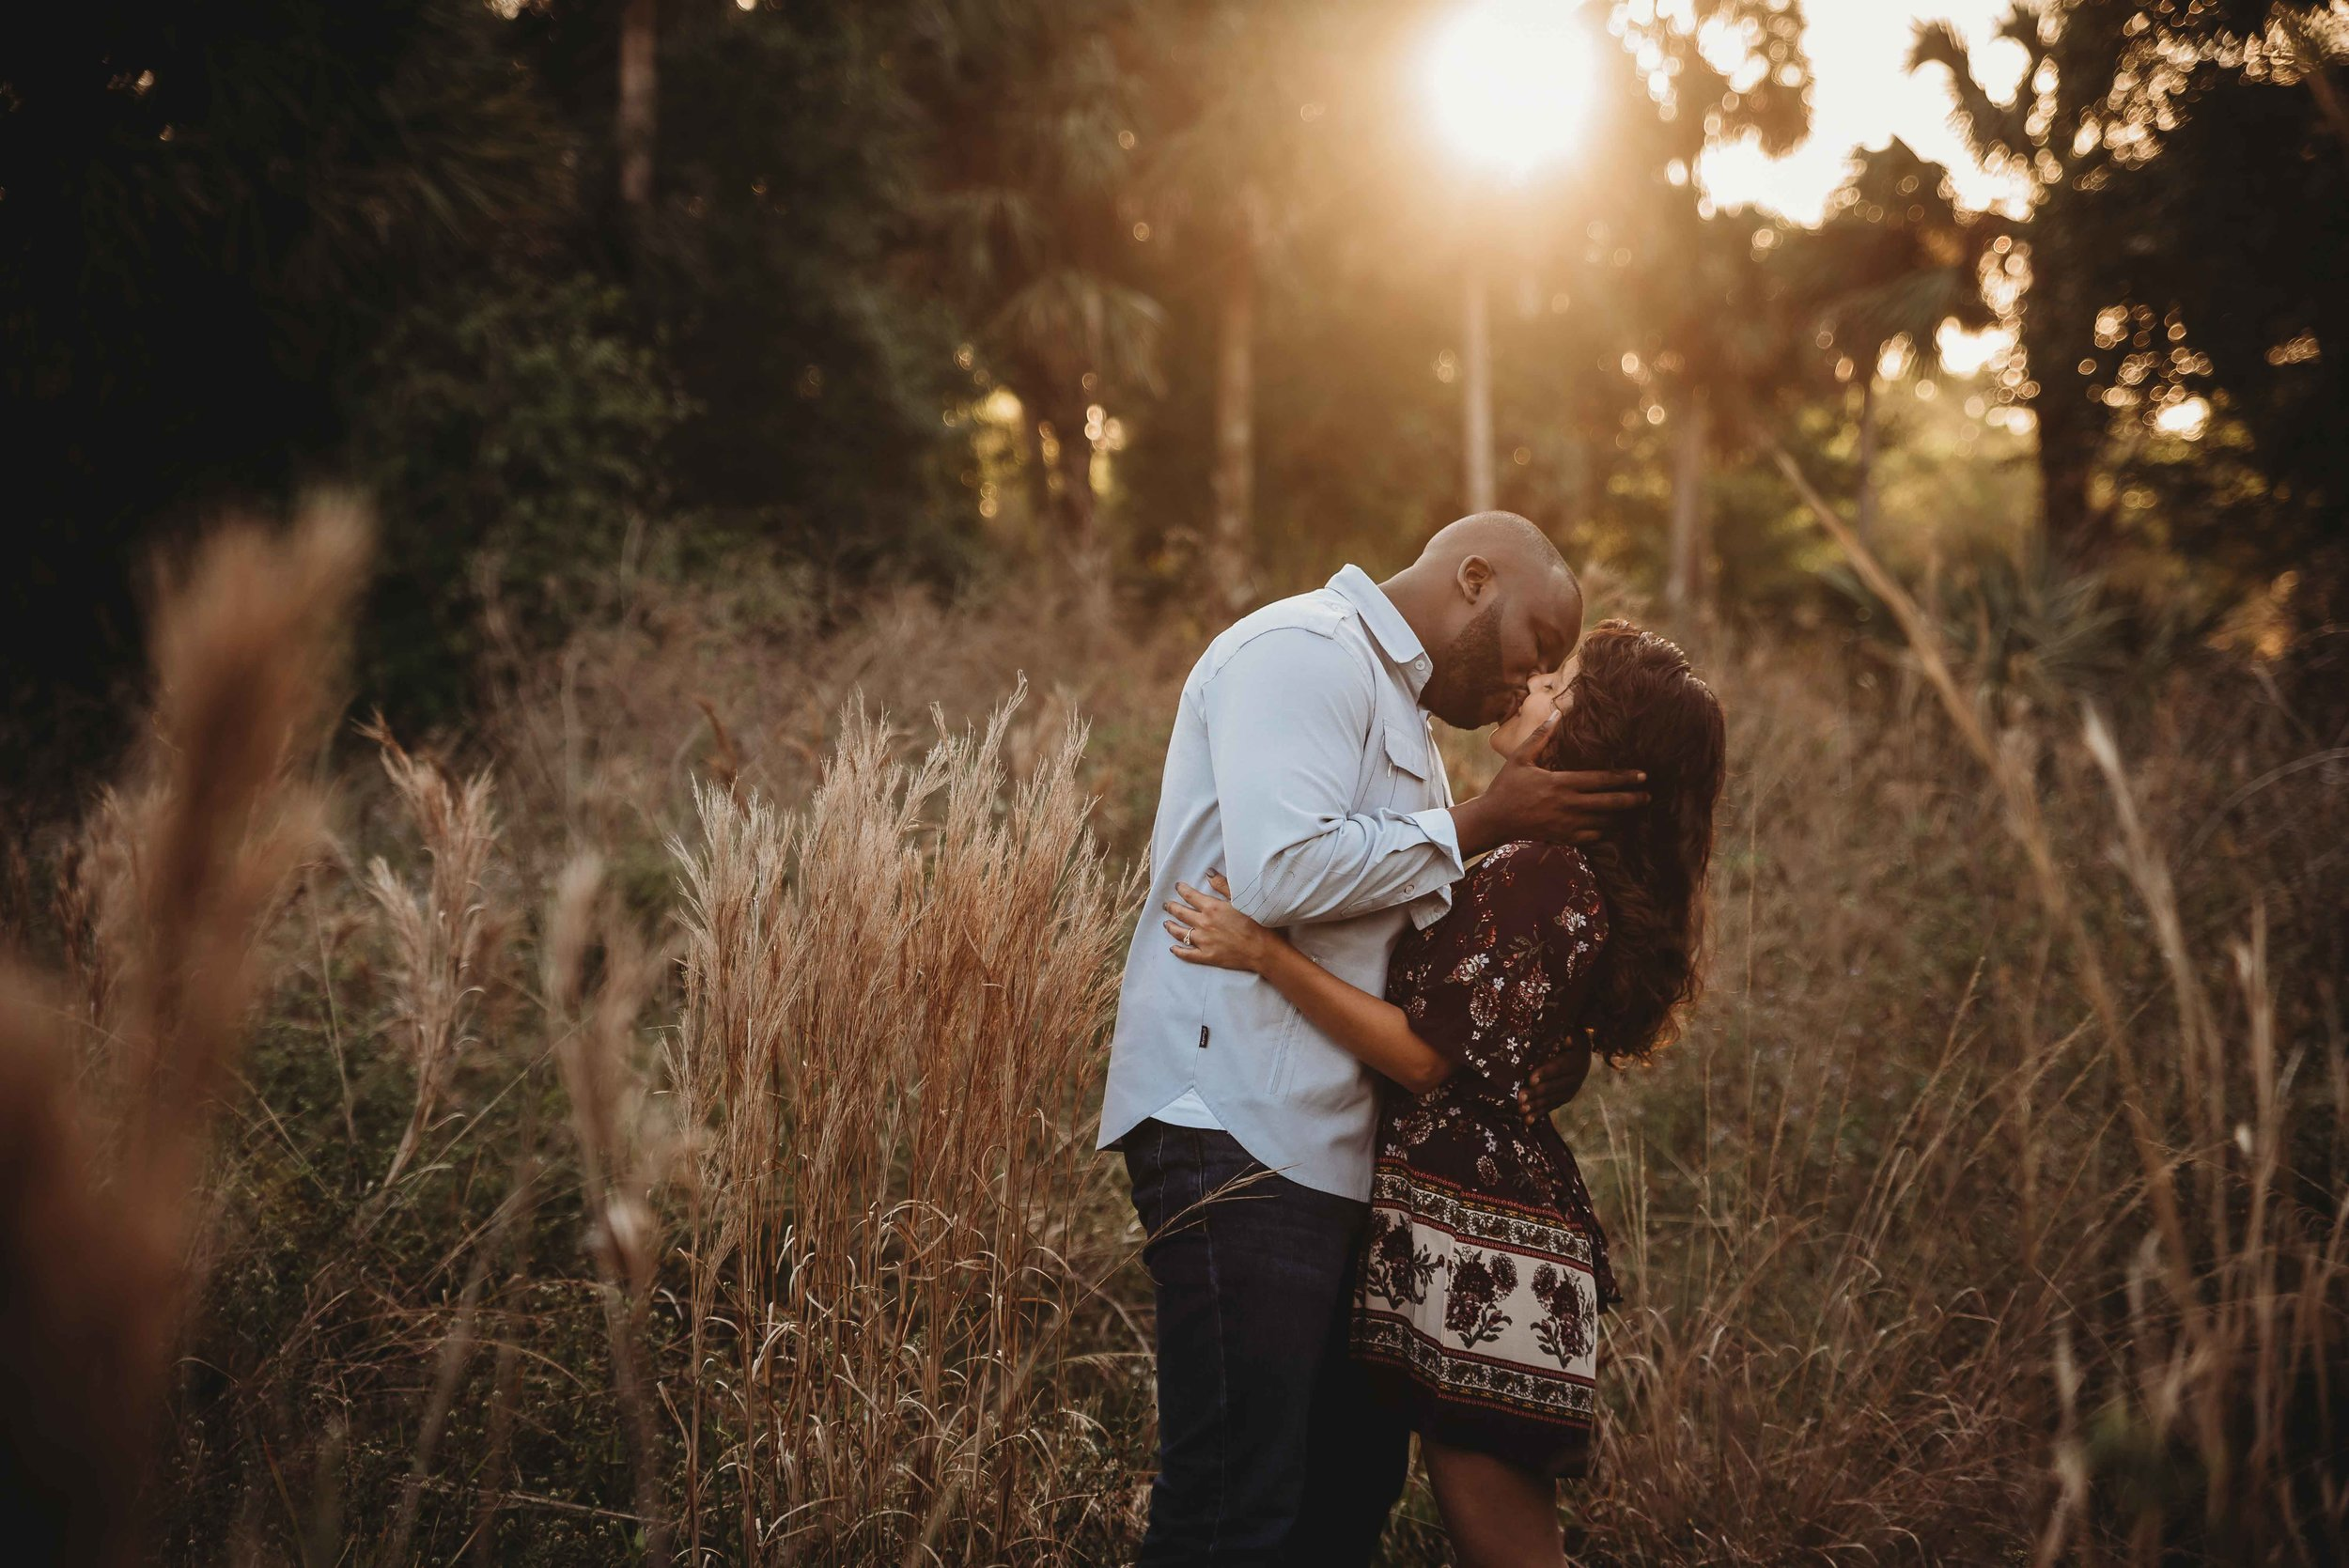 Jon_Manuela_Engagement_Session-46.jpg